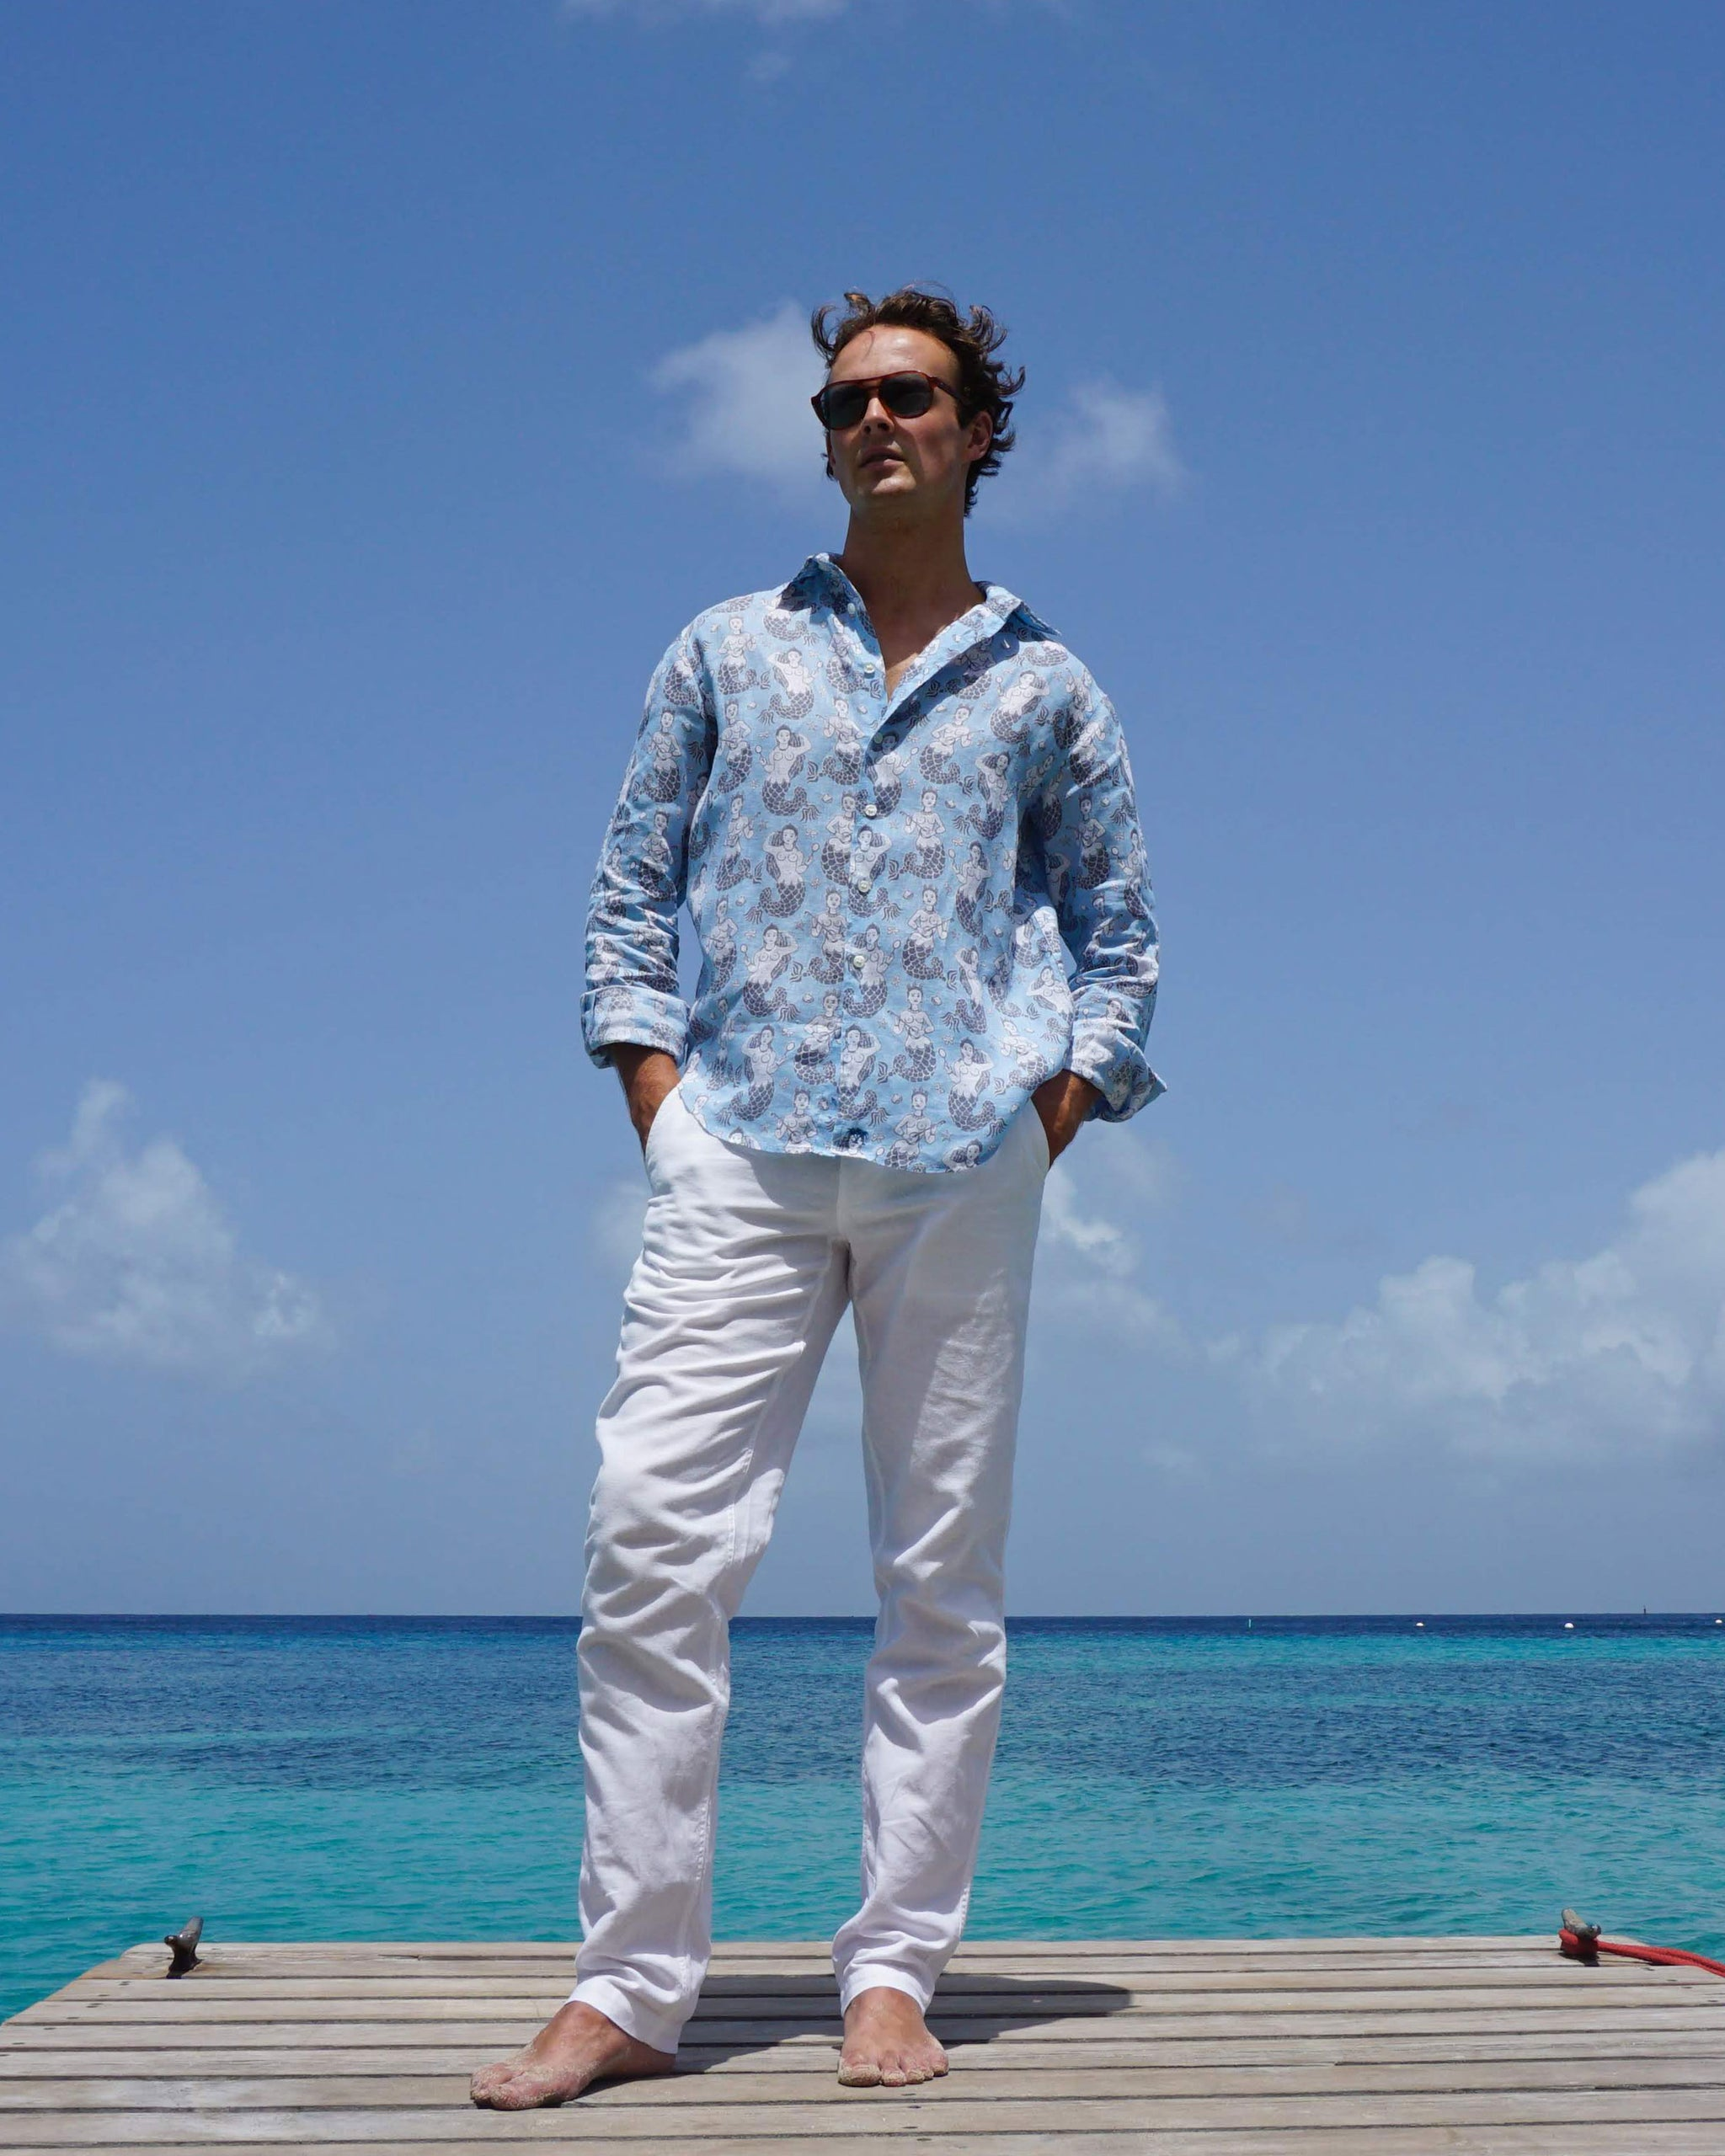 942d3f2a94 Mens Linen Shirt : MERMAID GREY / PALE BLUE easy to wear holiday shirts